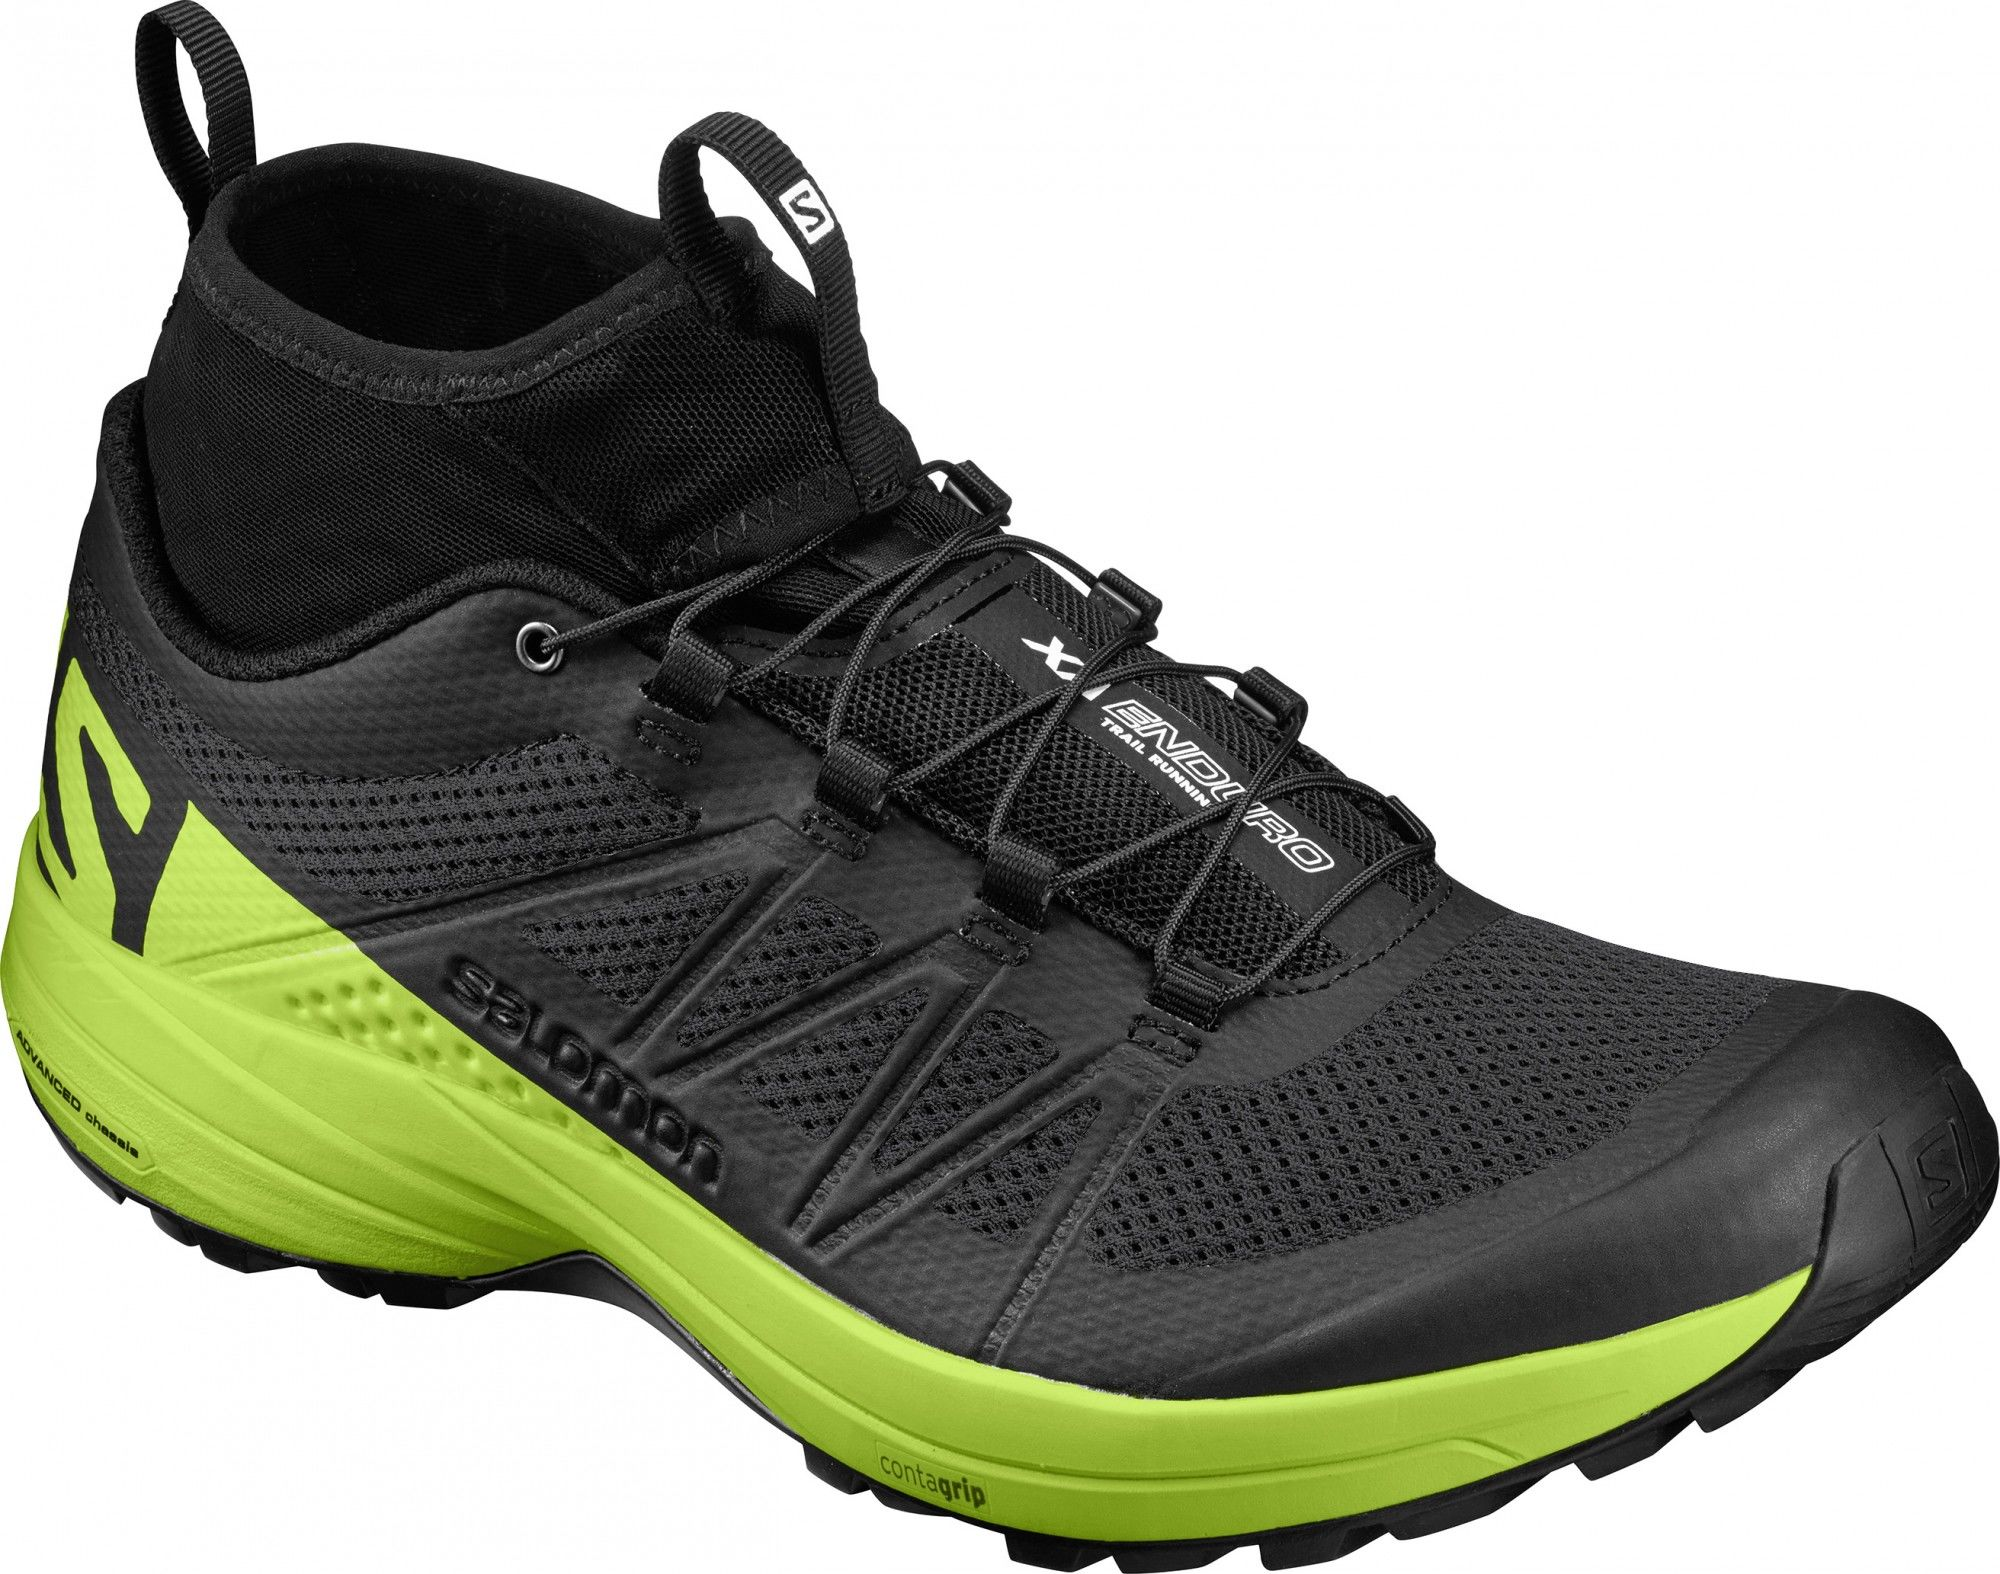 Salomon XA Enduro Schwarz, Male EU 46 -Farbe Black -Lime Green -Black, 46